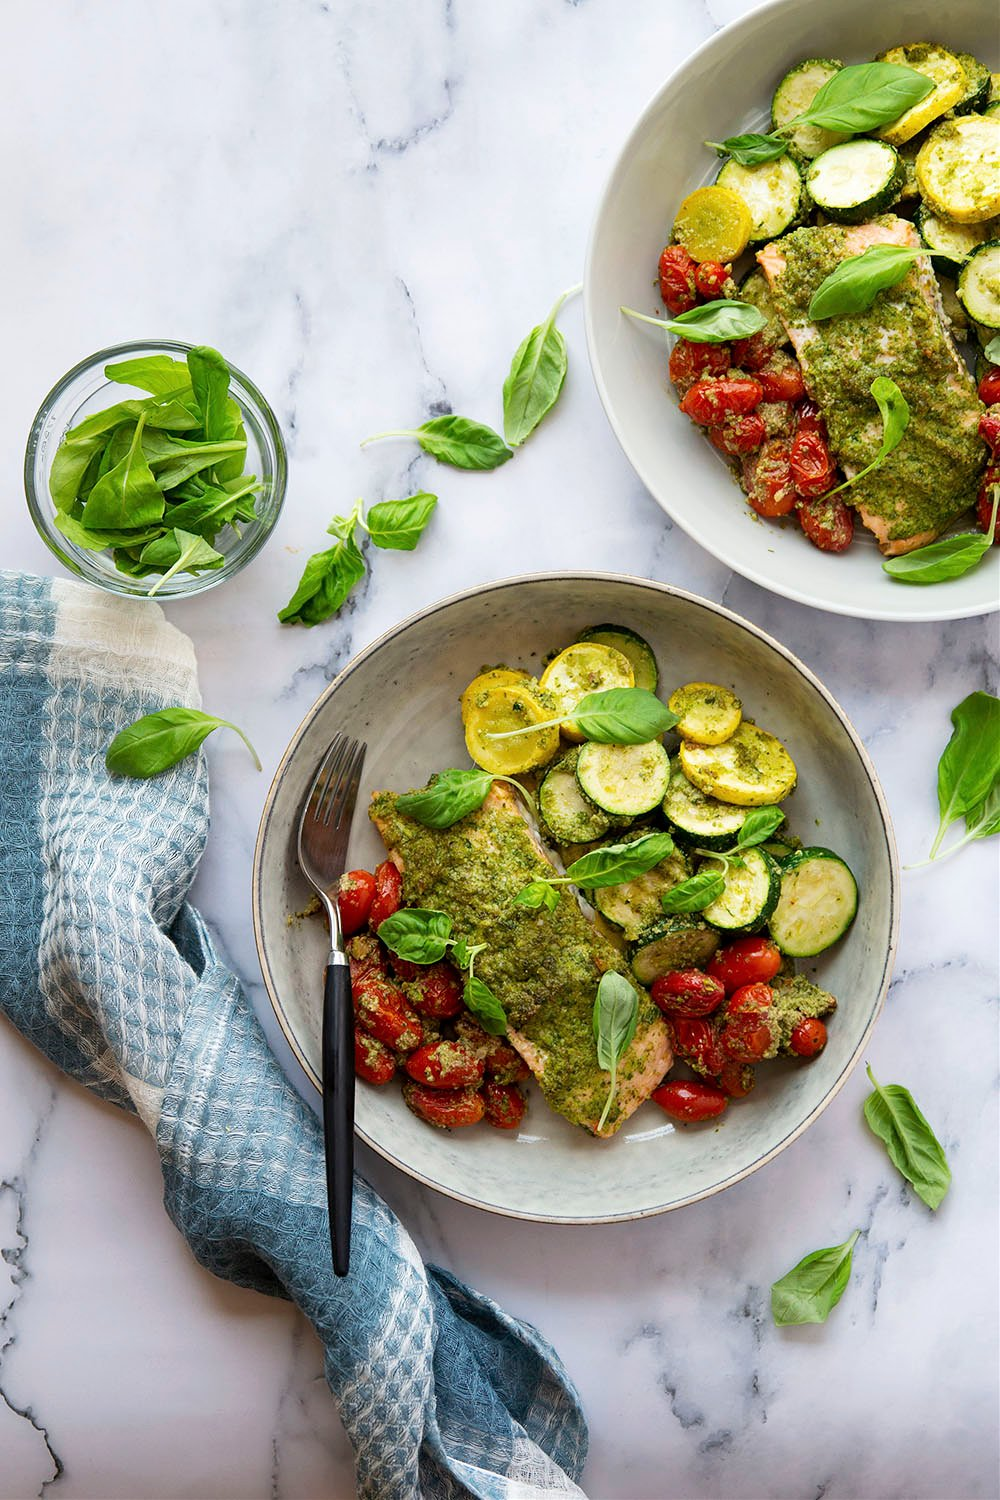 Baked entirely on one sheet pan and smothered in flavorful arugula pesto, this bursting tomato pesto salmon and zucchini is the perfect weeknight dinner to use up an abundance of veggies!